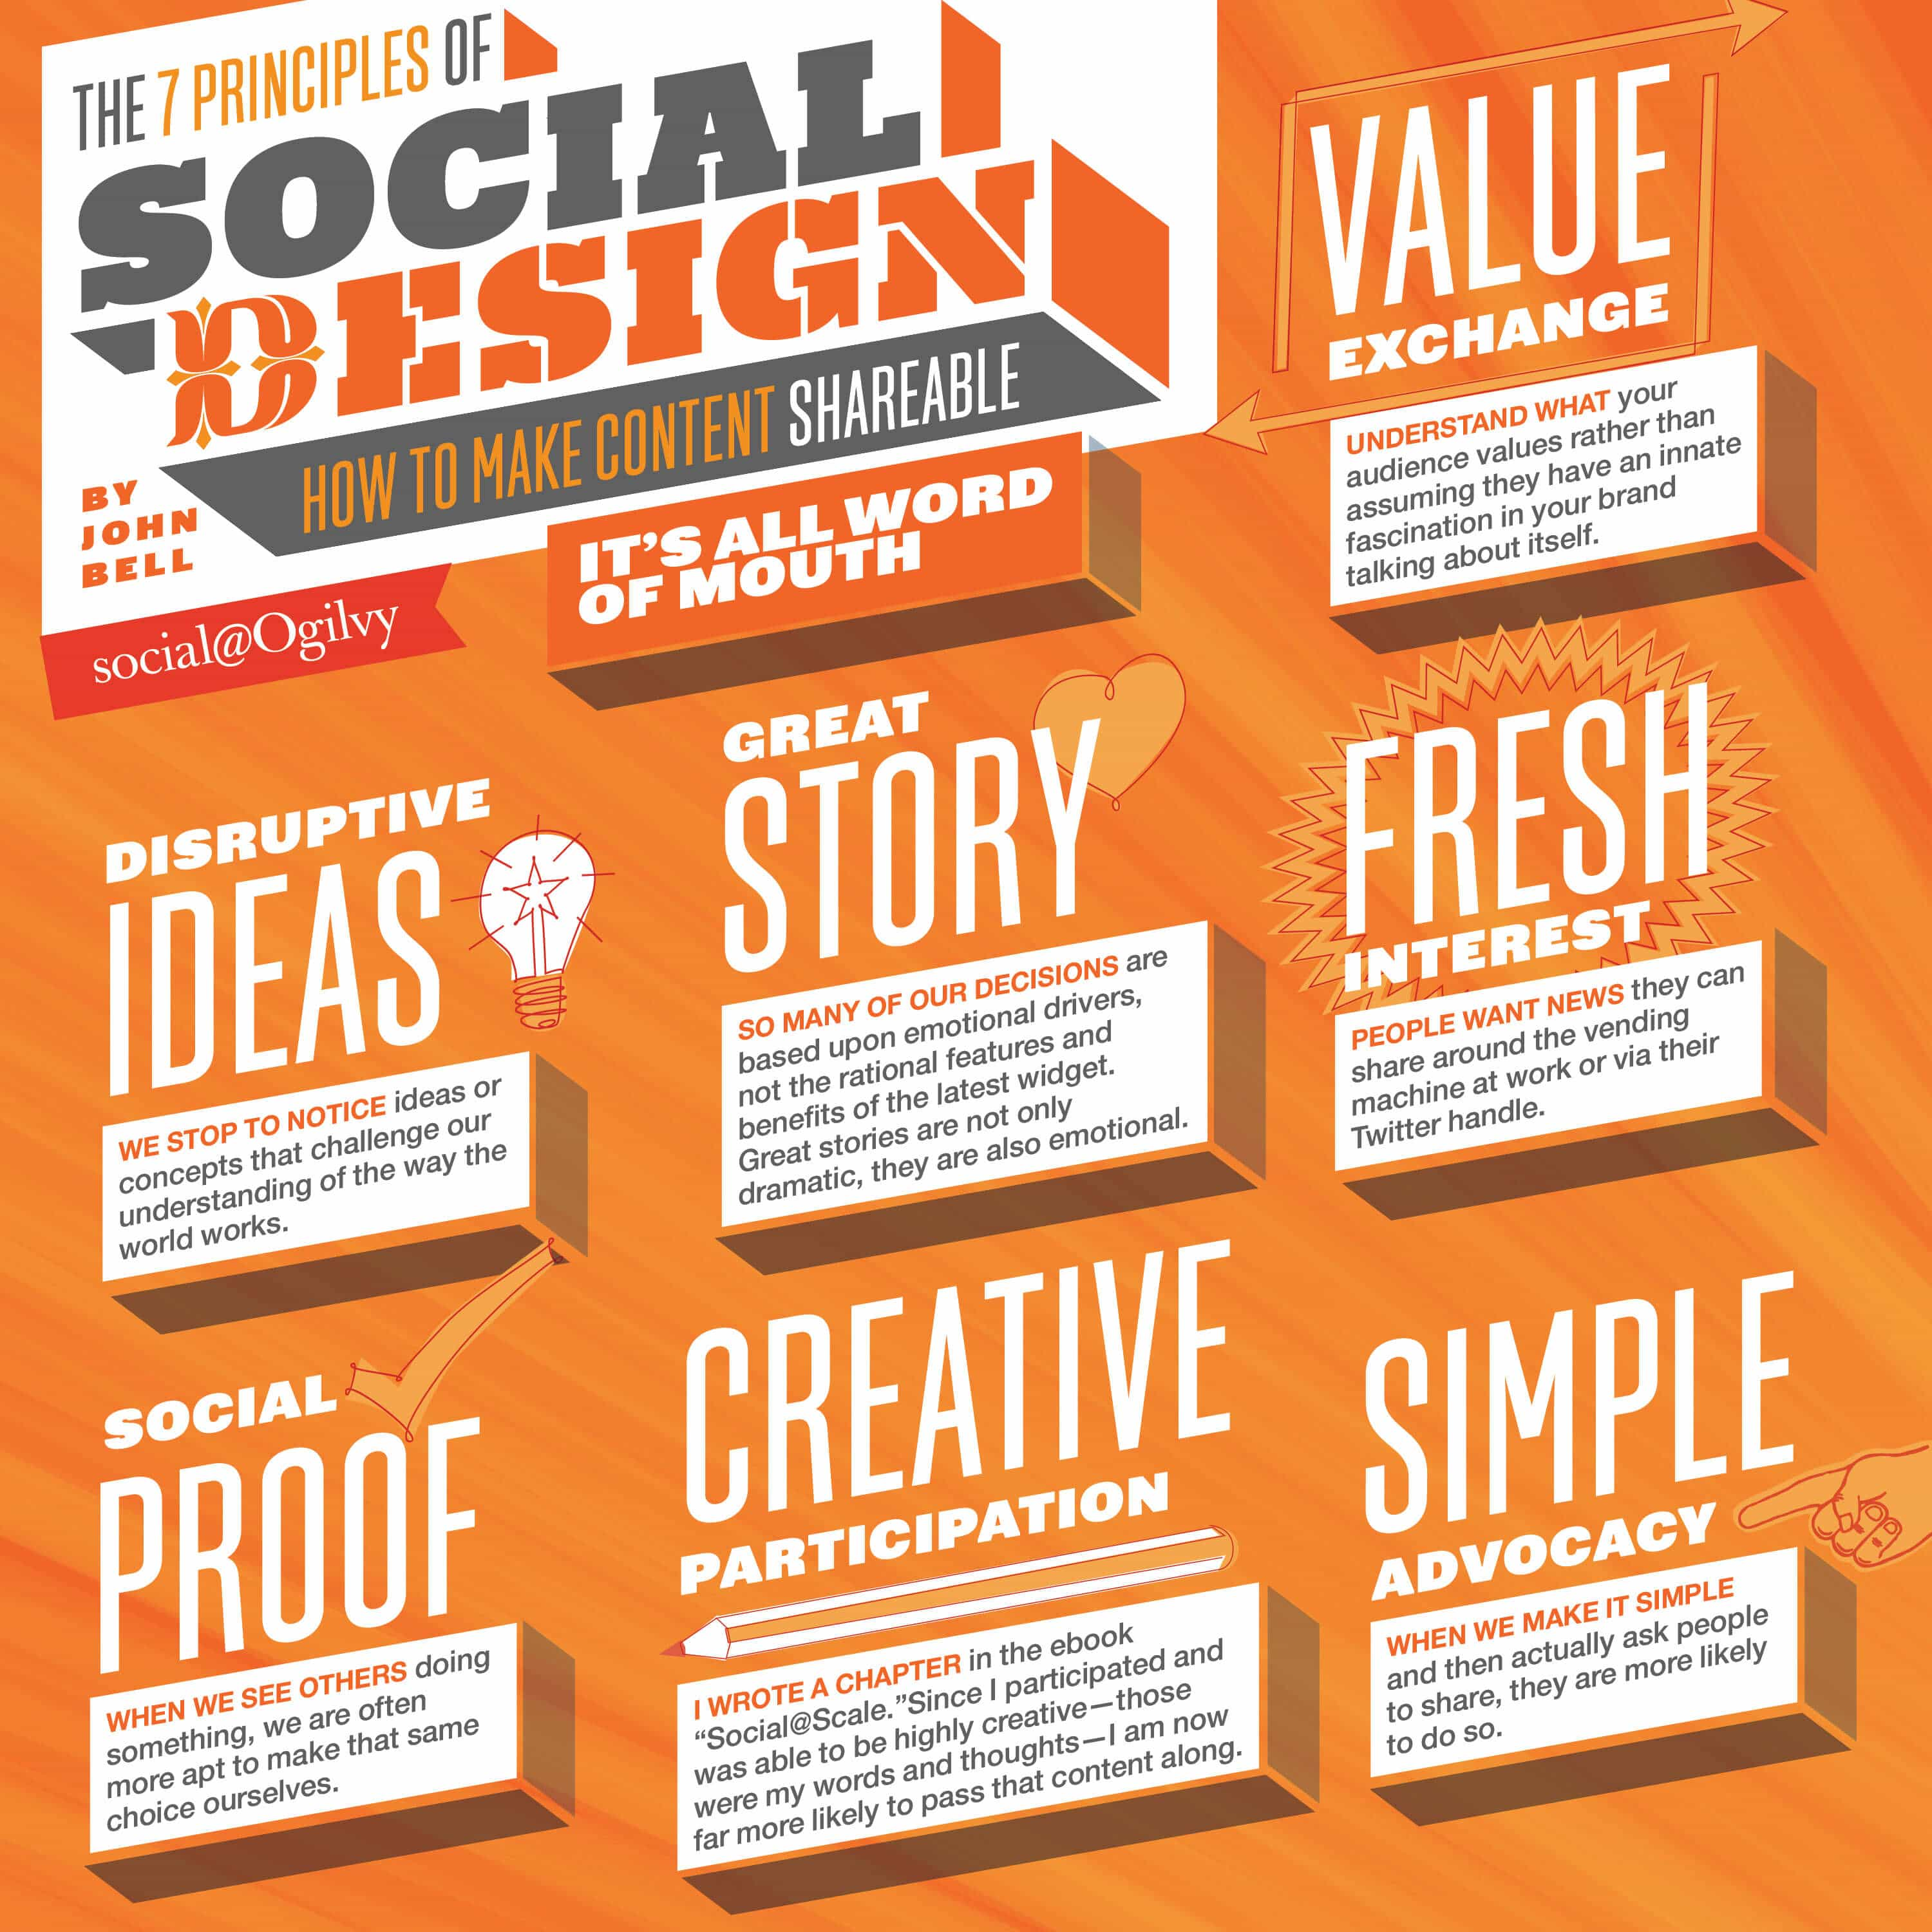 Social-Design-How-to-Make-Content-Shareable[1]